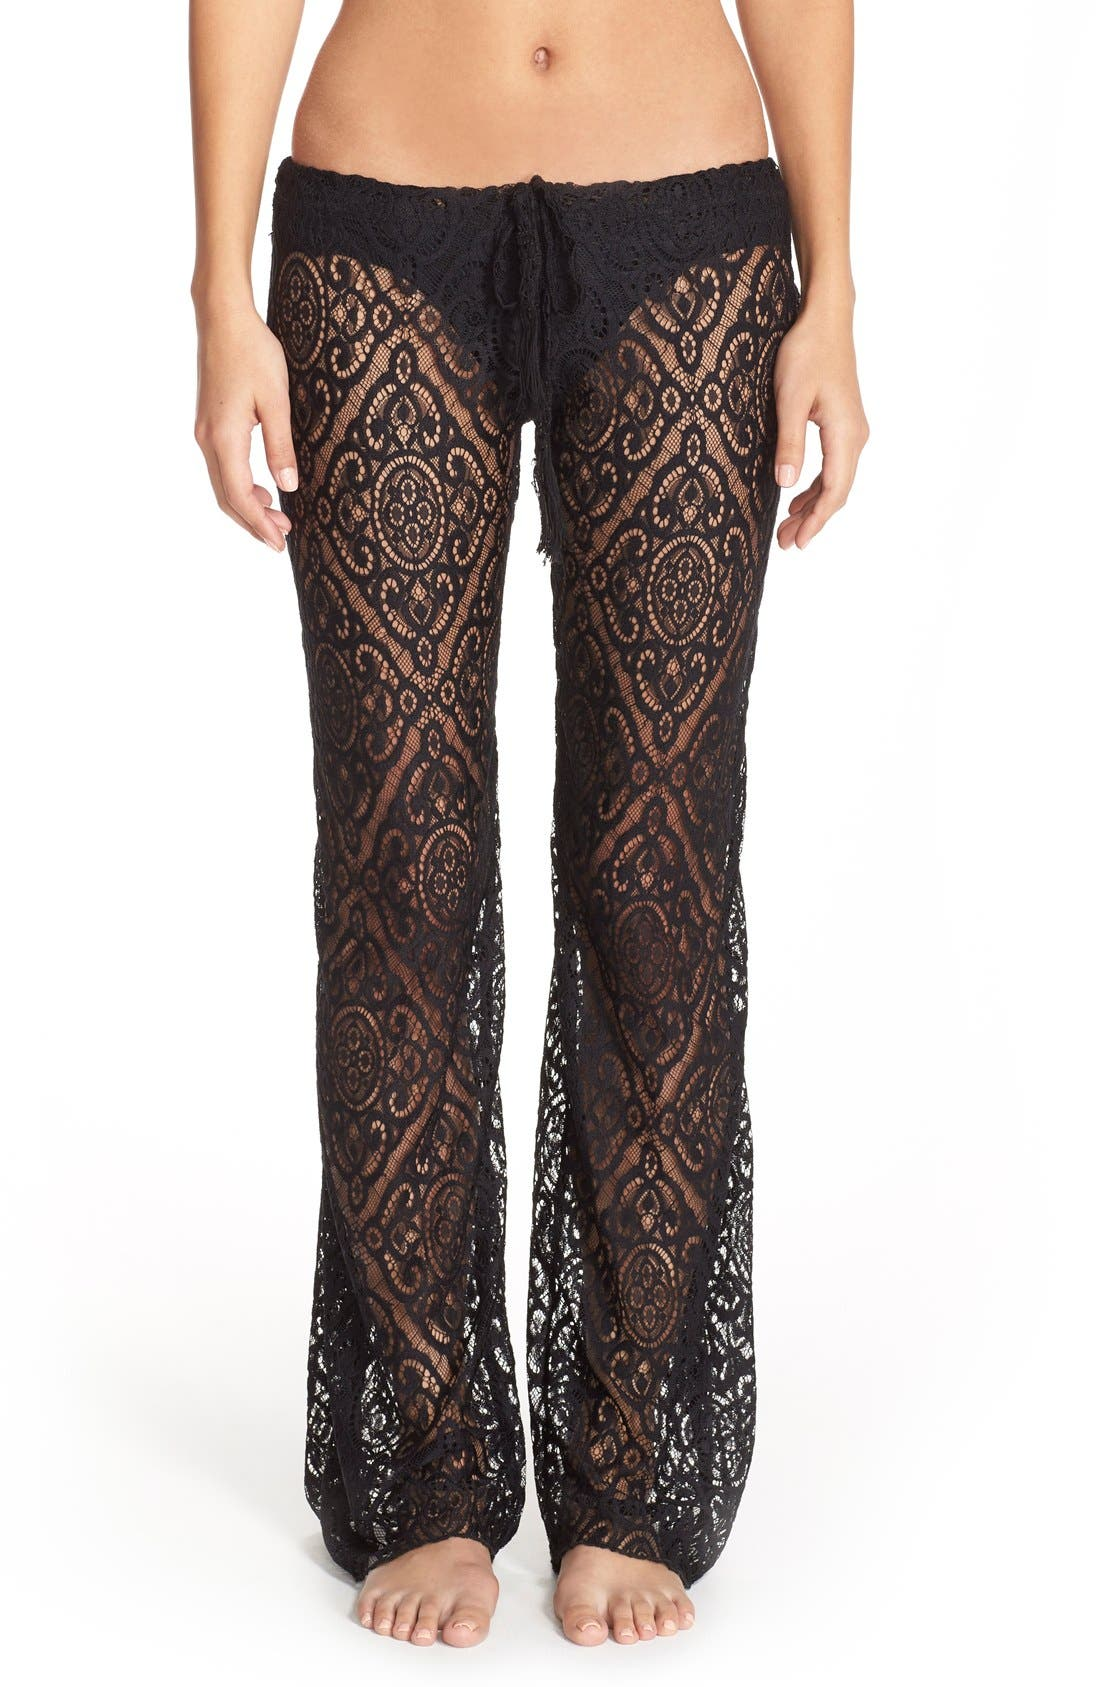 Main Image - Becca 'Amore' Lace Swim Cover Up Pants